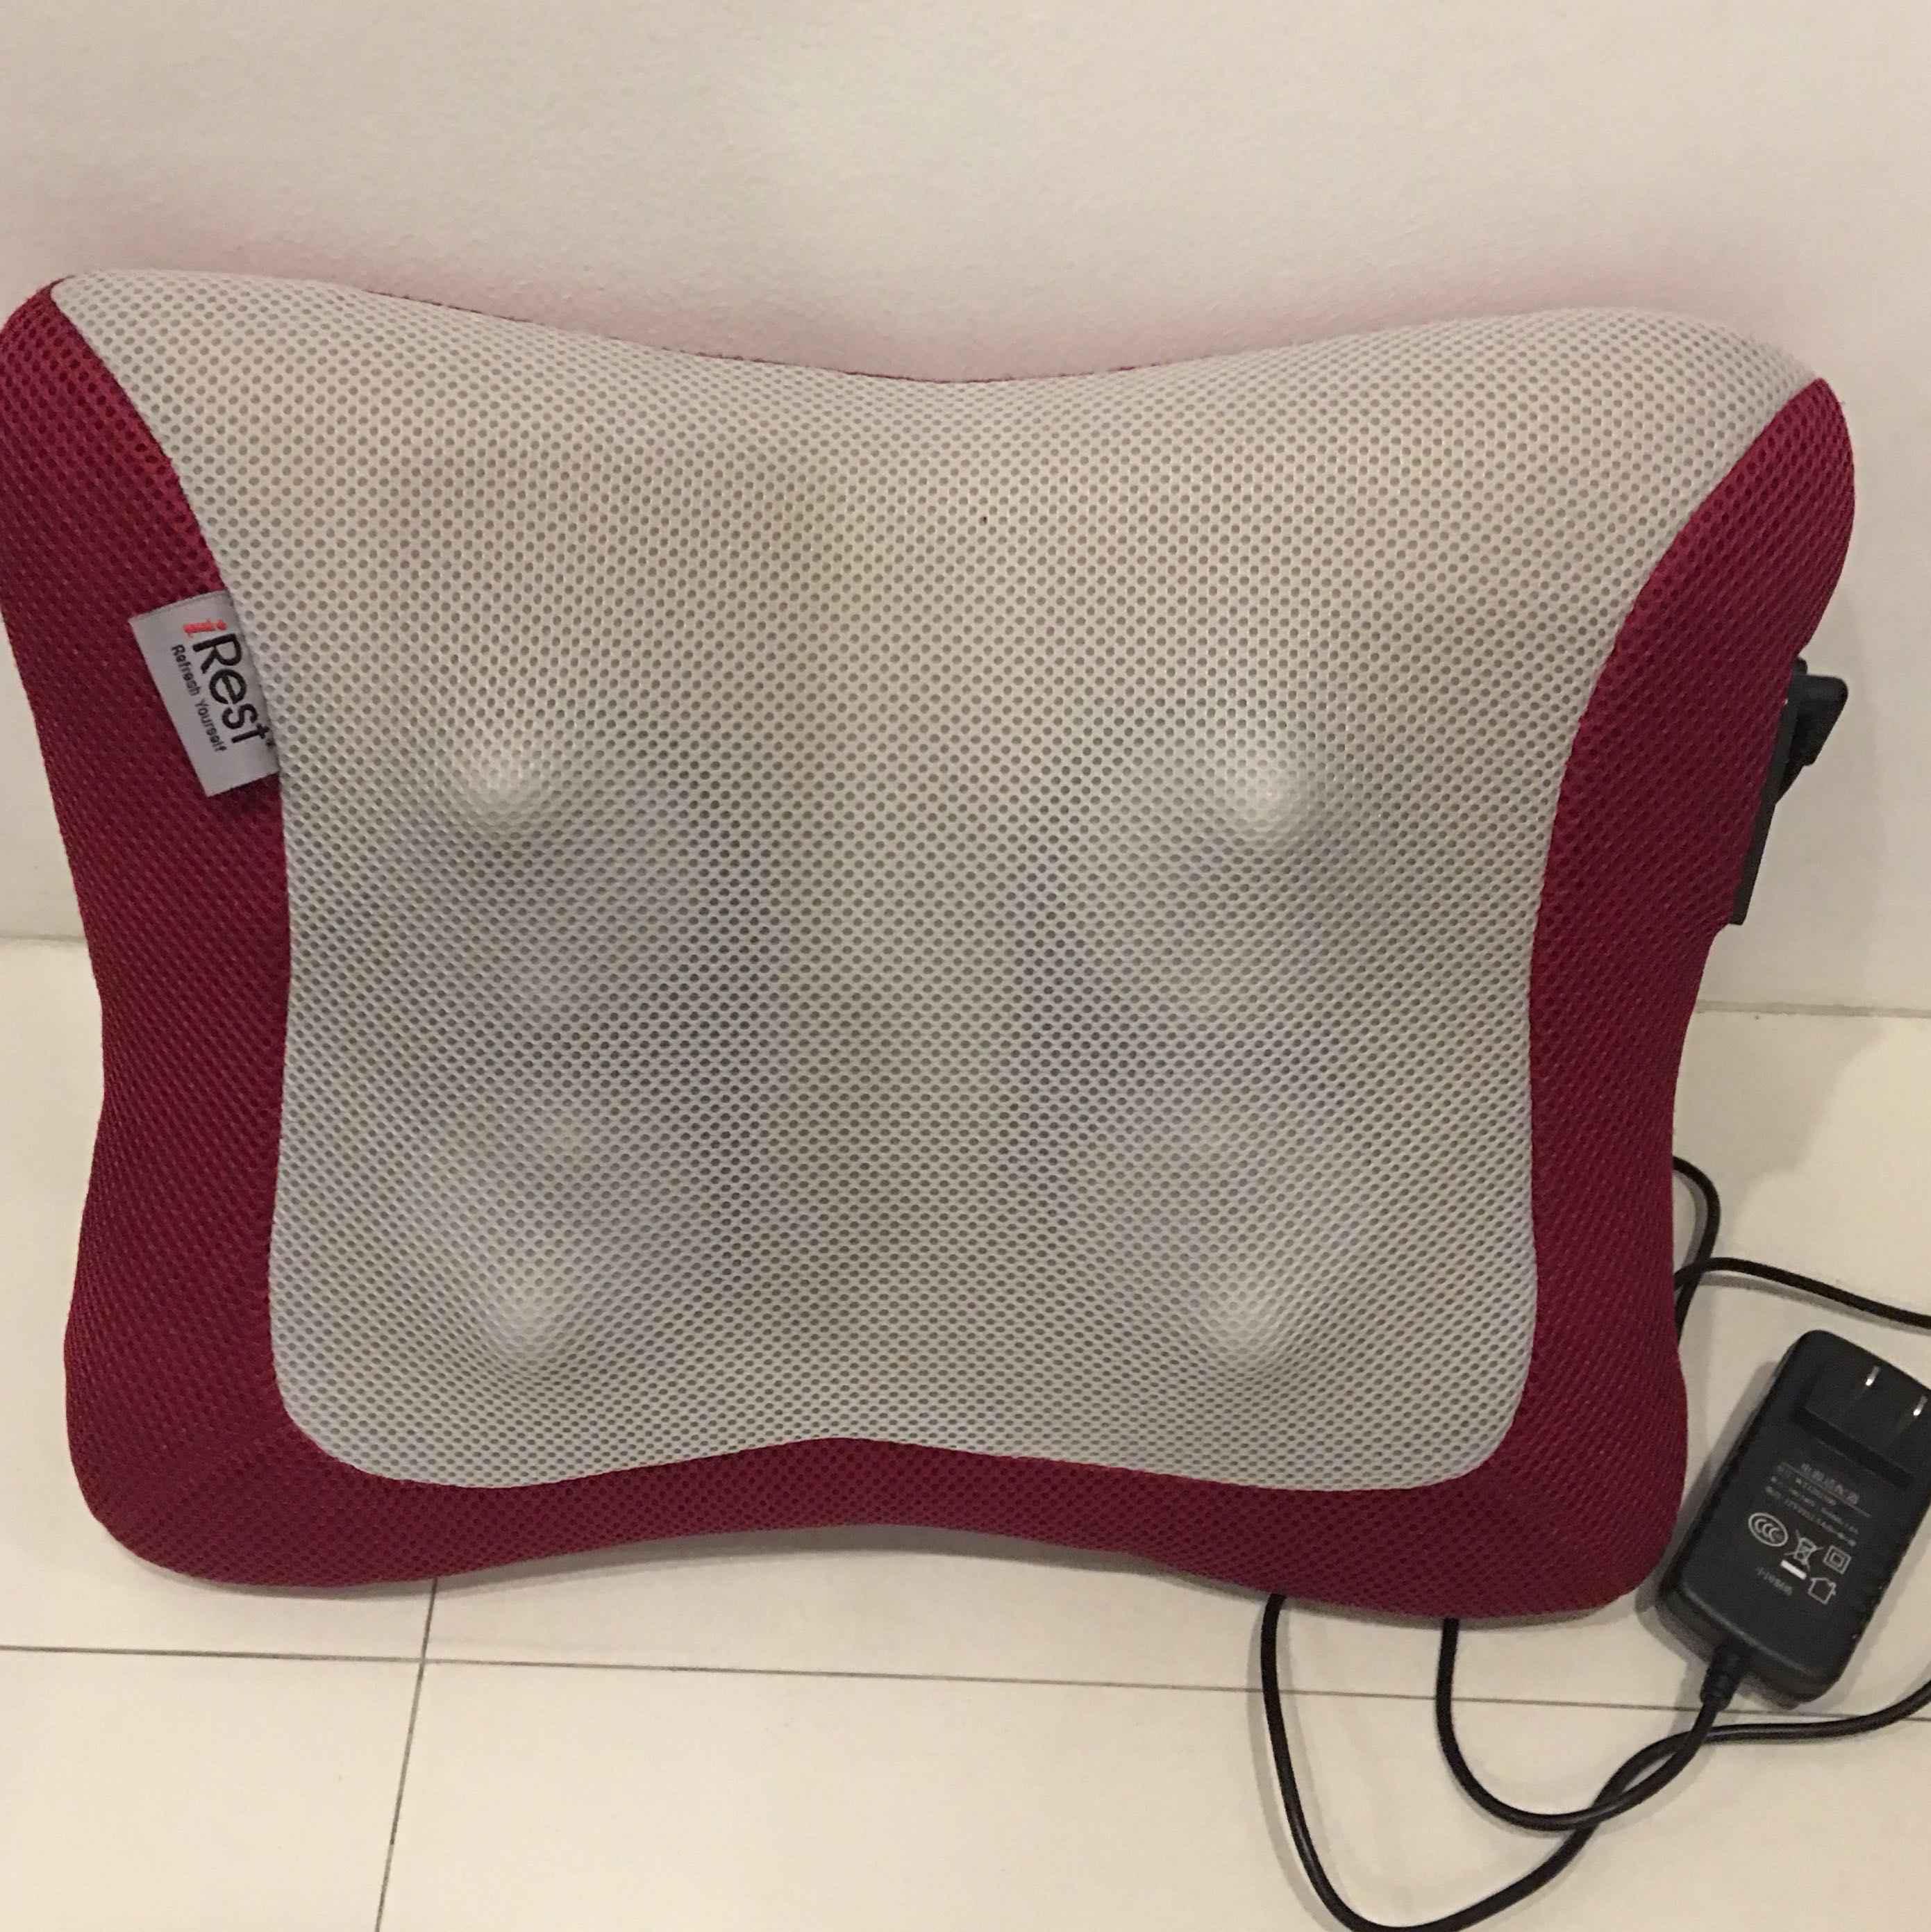 Irest Back Cushion Massager Maroon Electronics Others On Carousell